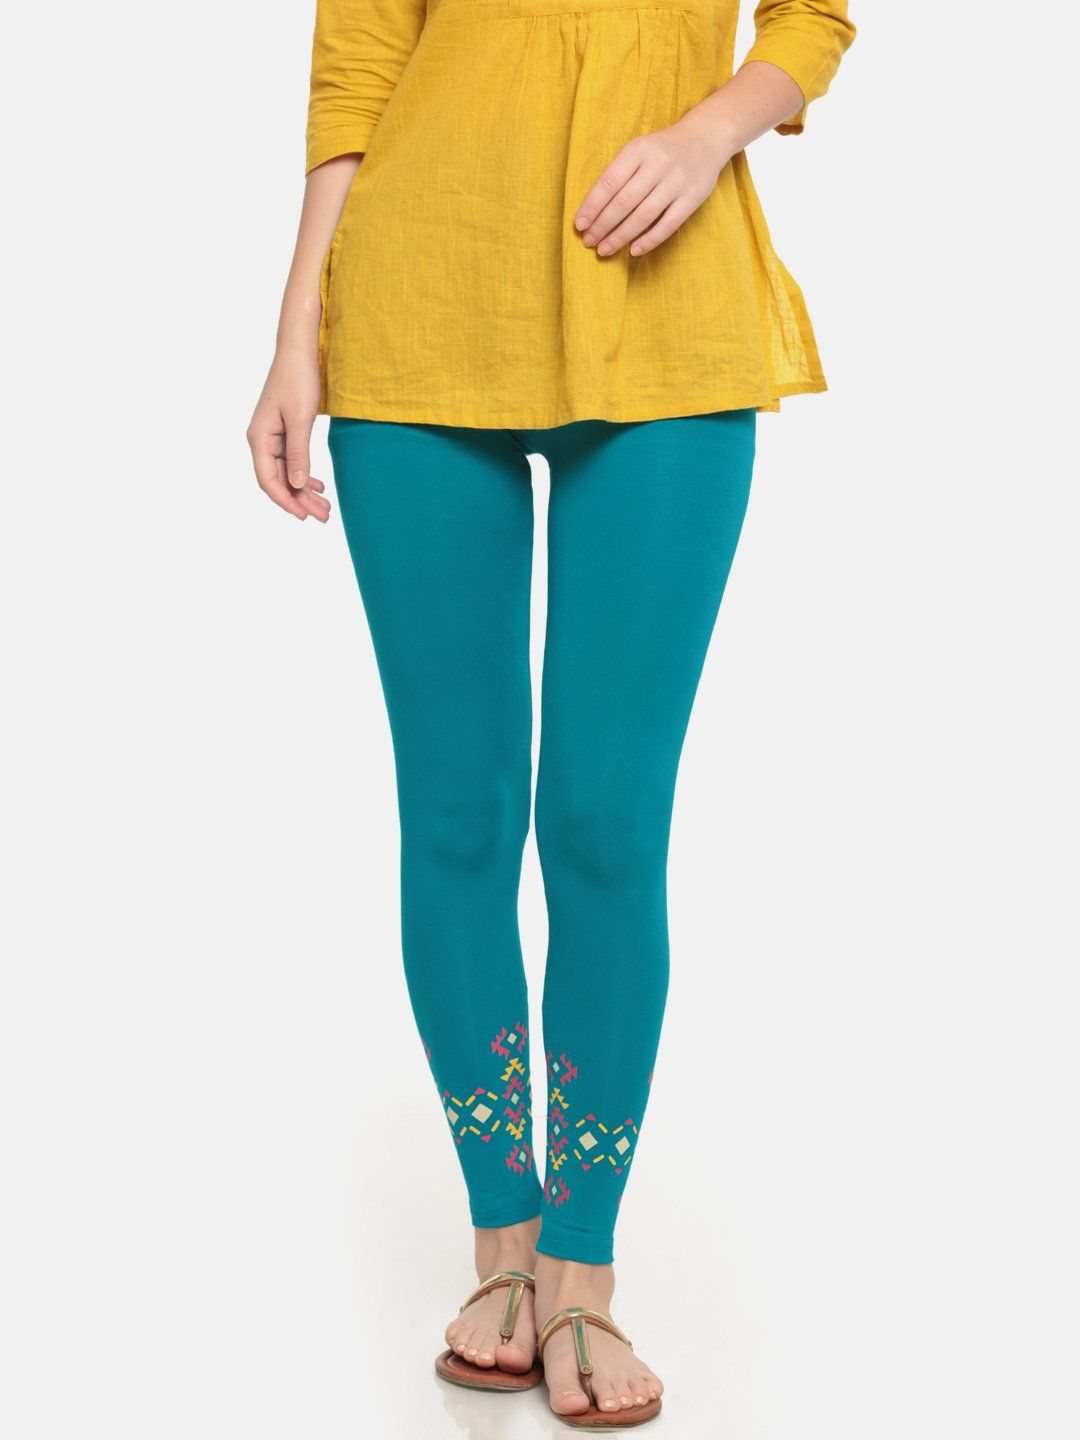 8b01ffc26b0ed De Moza Ladies Viscose Ankle Length Placement print Legging Teal #fashion  #womenstops #cybermonday #bloggerpost #bloggers #indigirl #tops  #onlinedeals ...